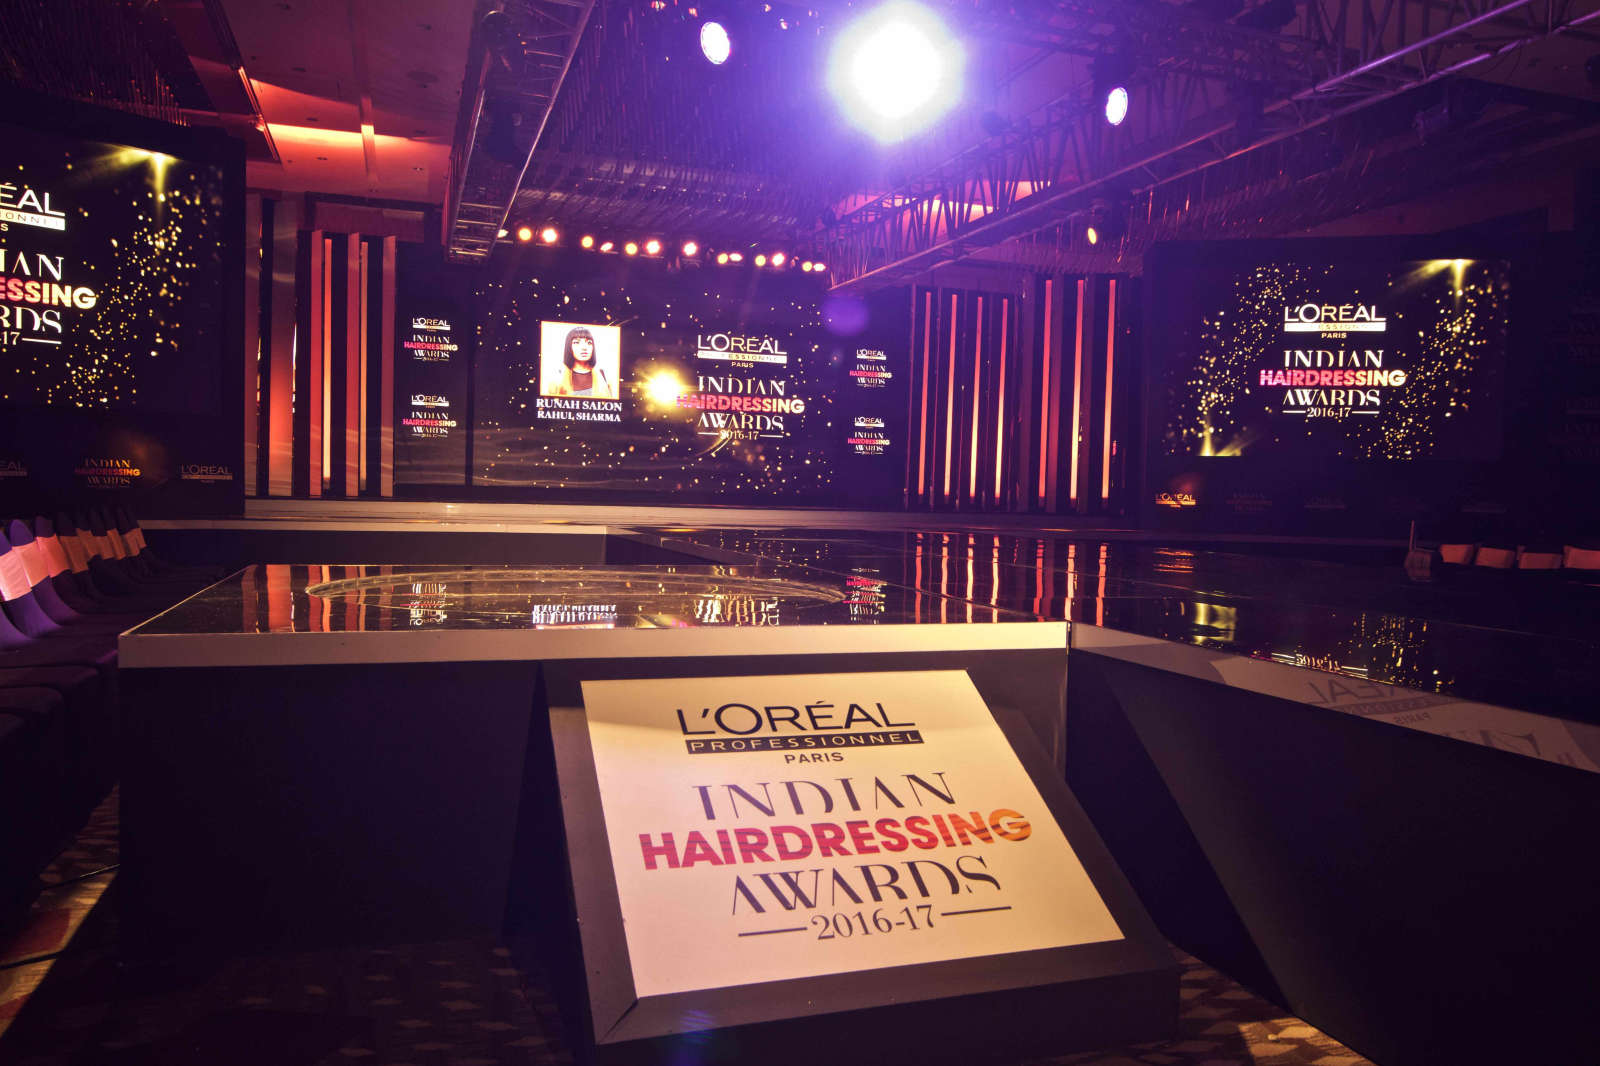 L'Oreal Hairdressing Awards